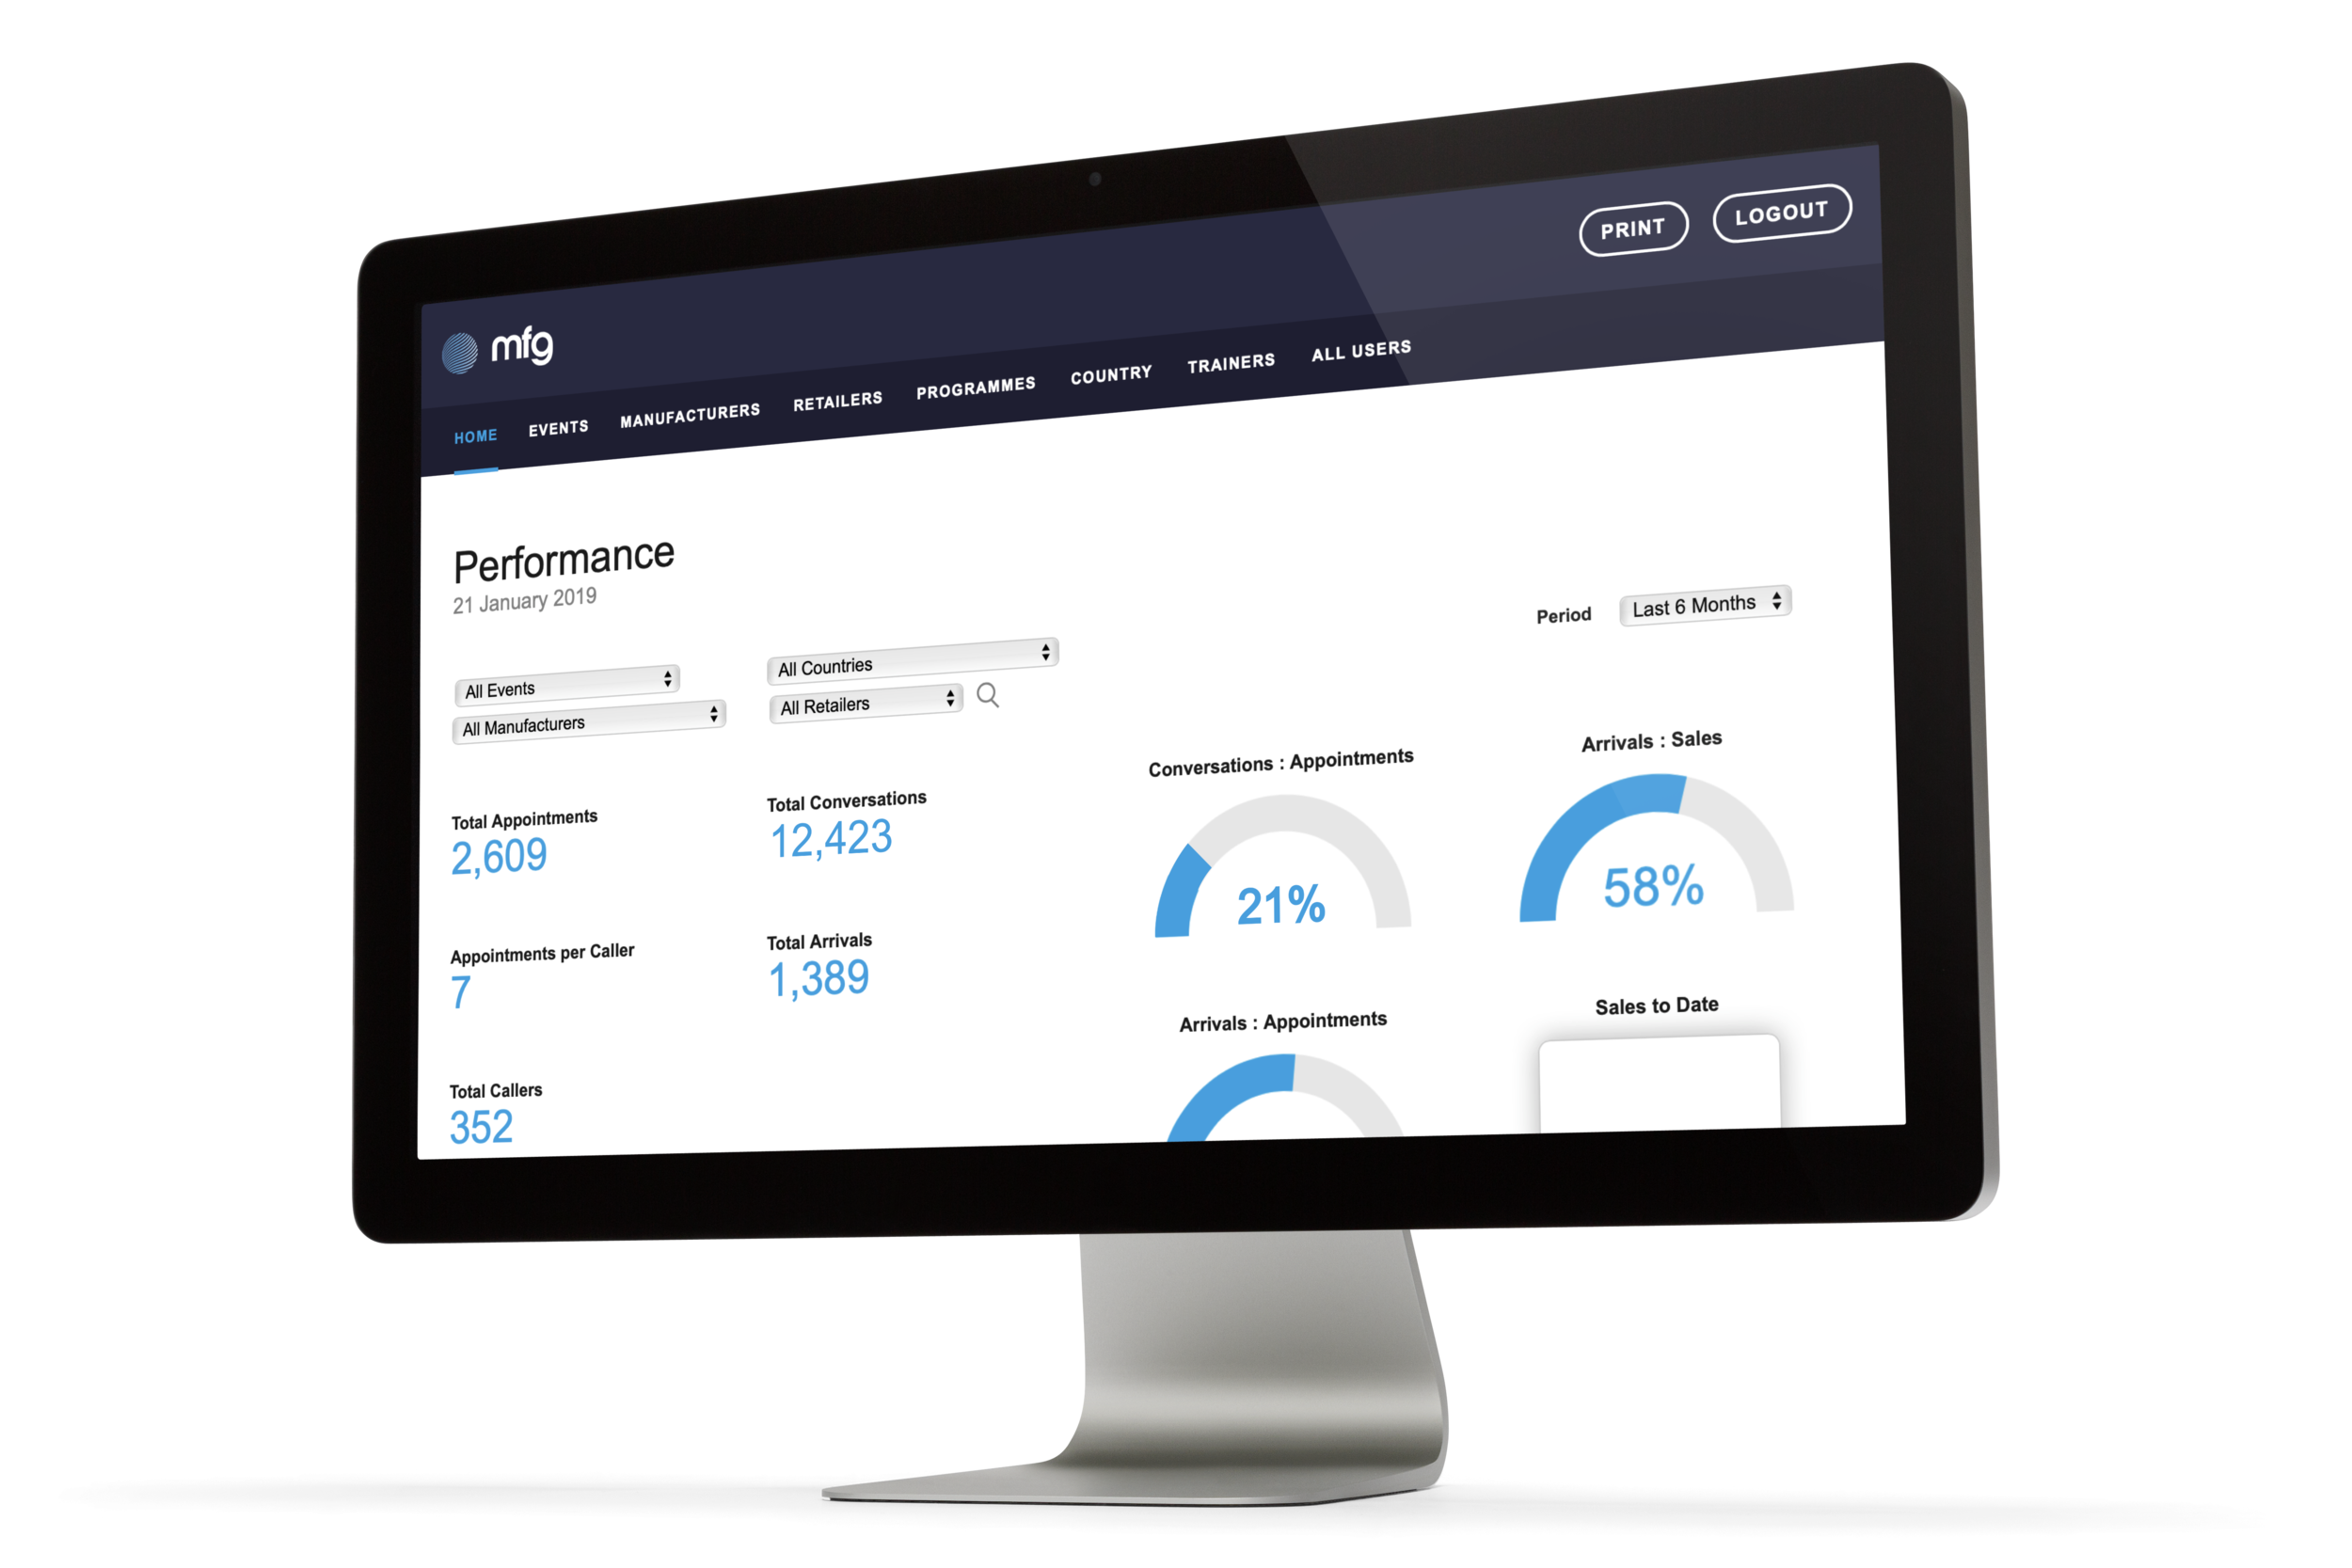 MFG Performance - Now everyone that books an MFG Sales Generator ™ or MFG Sales Generator Plus ™ package will enjoy live updates via the MFG Performance Dashboard. This powerful online platform has been built to deliver the information you need at the touch of a button - covering everything from calls made and appointments generated to customer show-ups and sales converted.